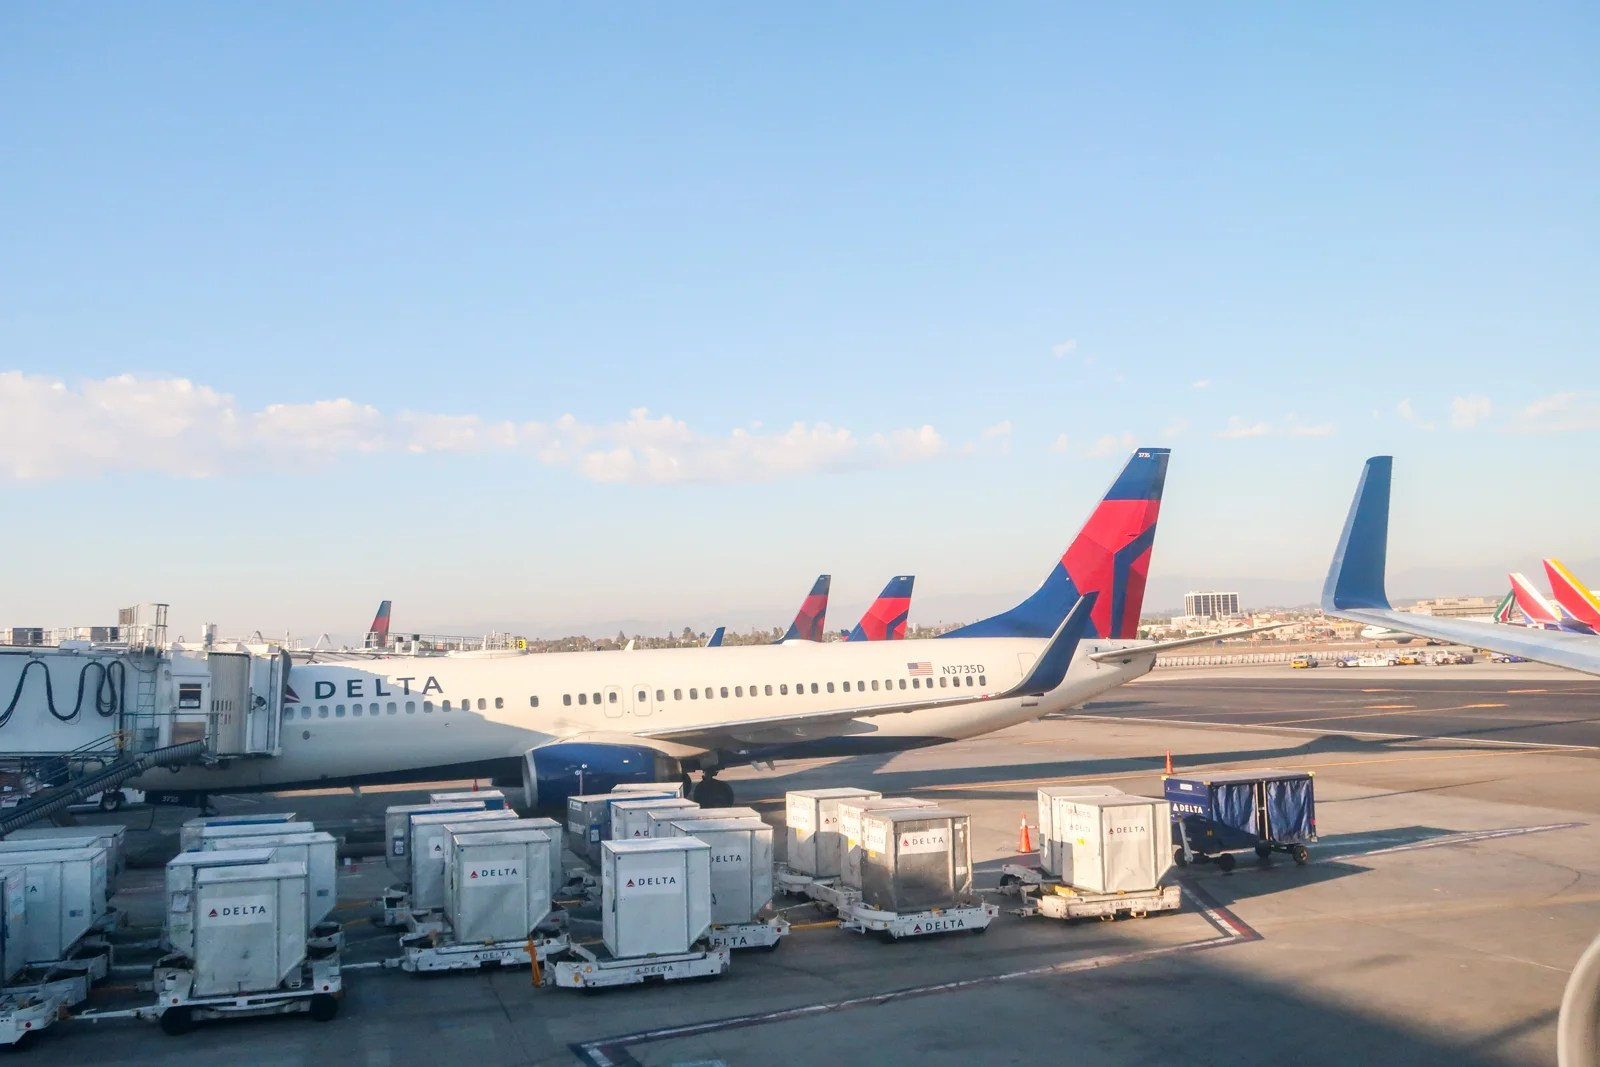 Rock bottom Delta deals — Nonstop domestic awards from 2,500 miles one-way